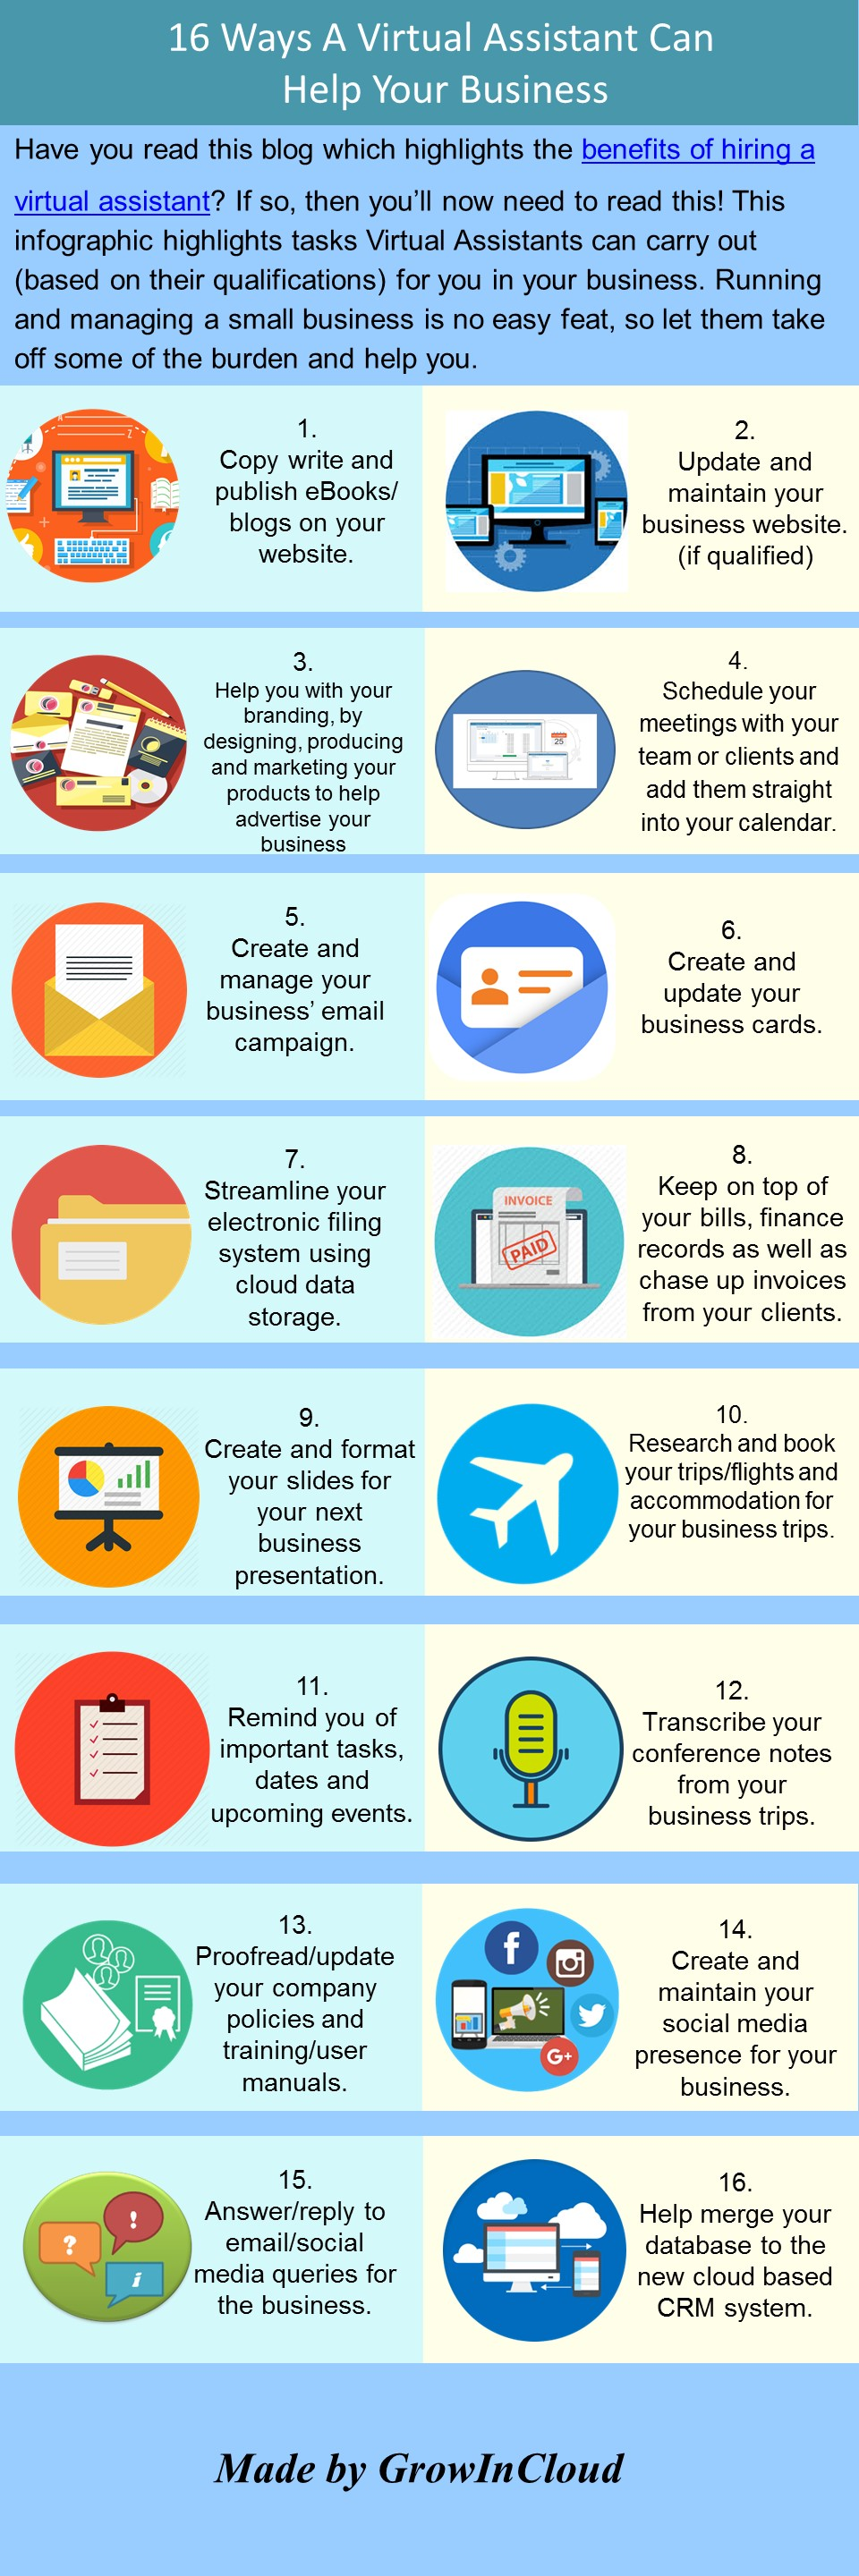 16 ways VA can help your business